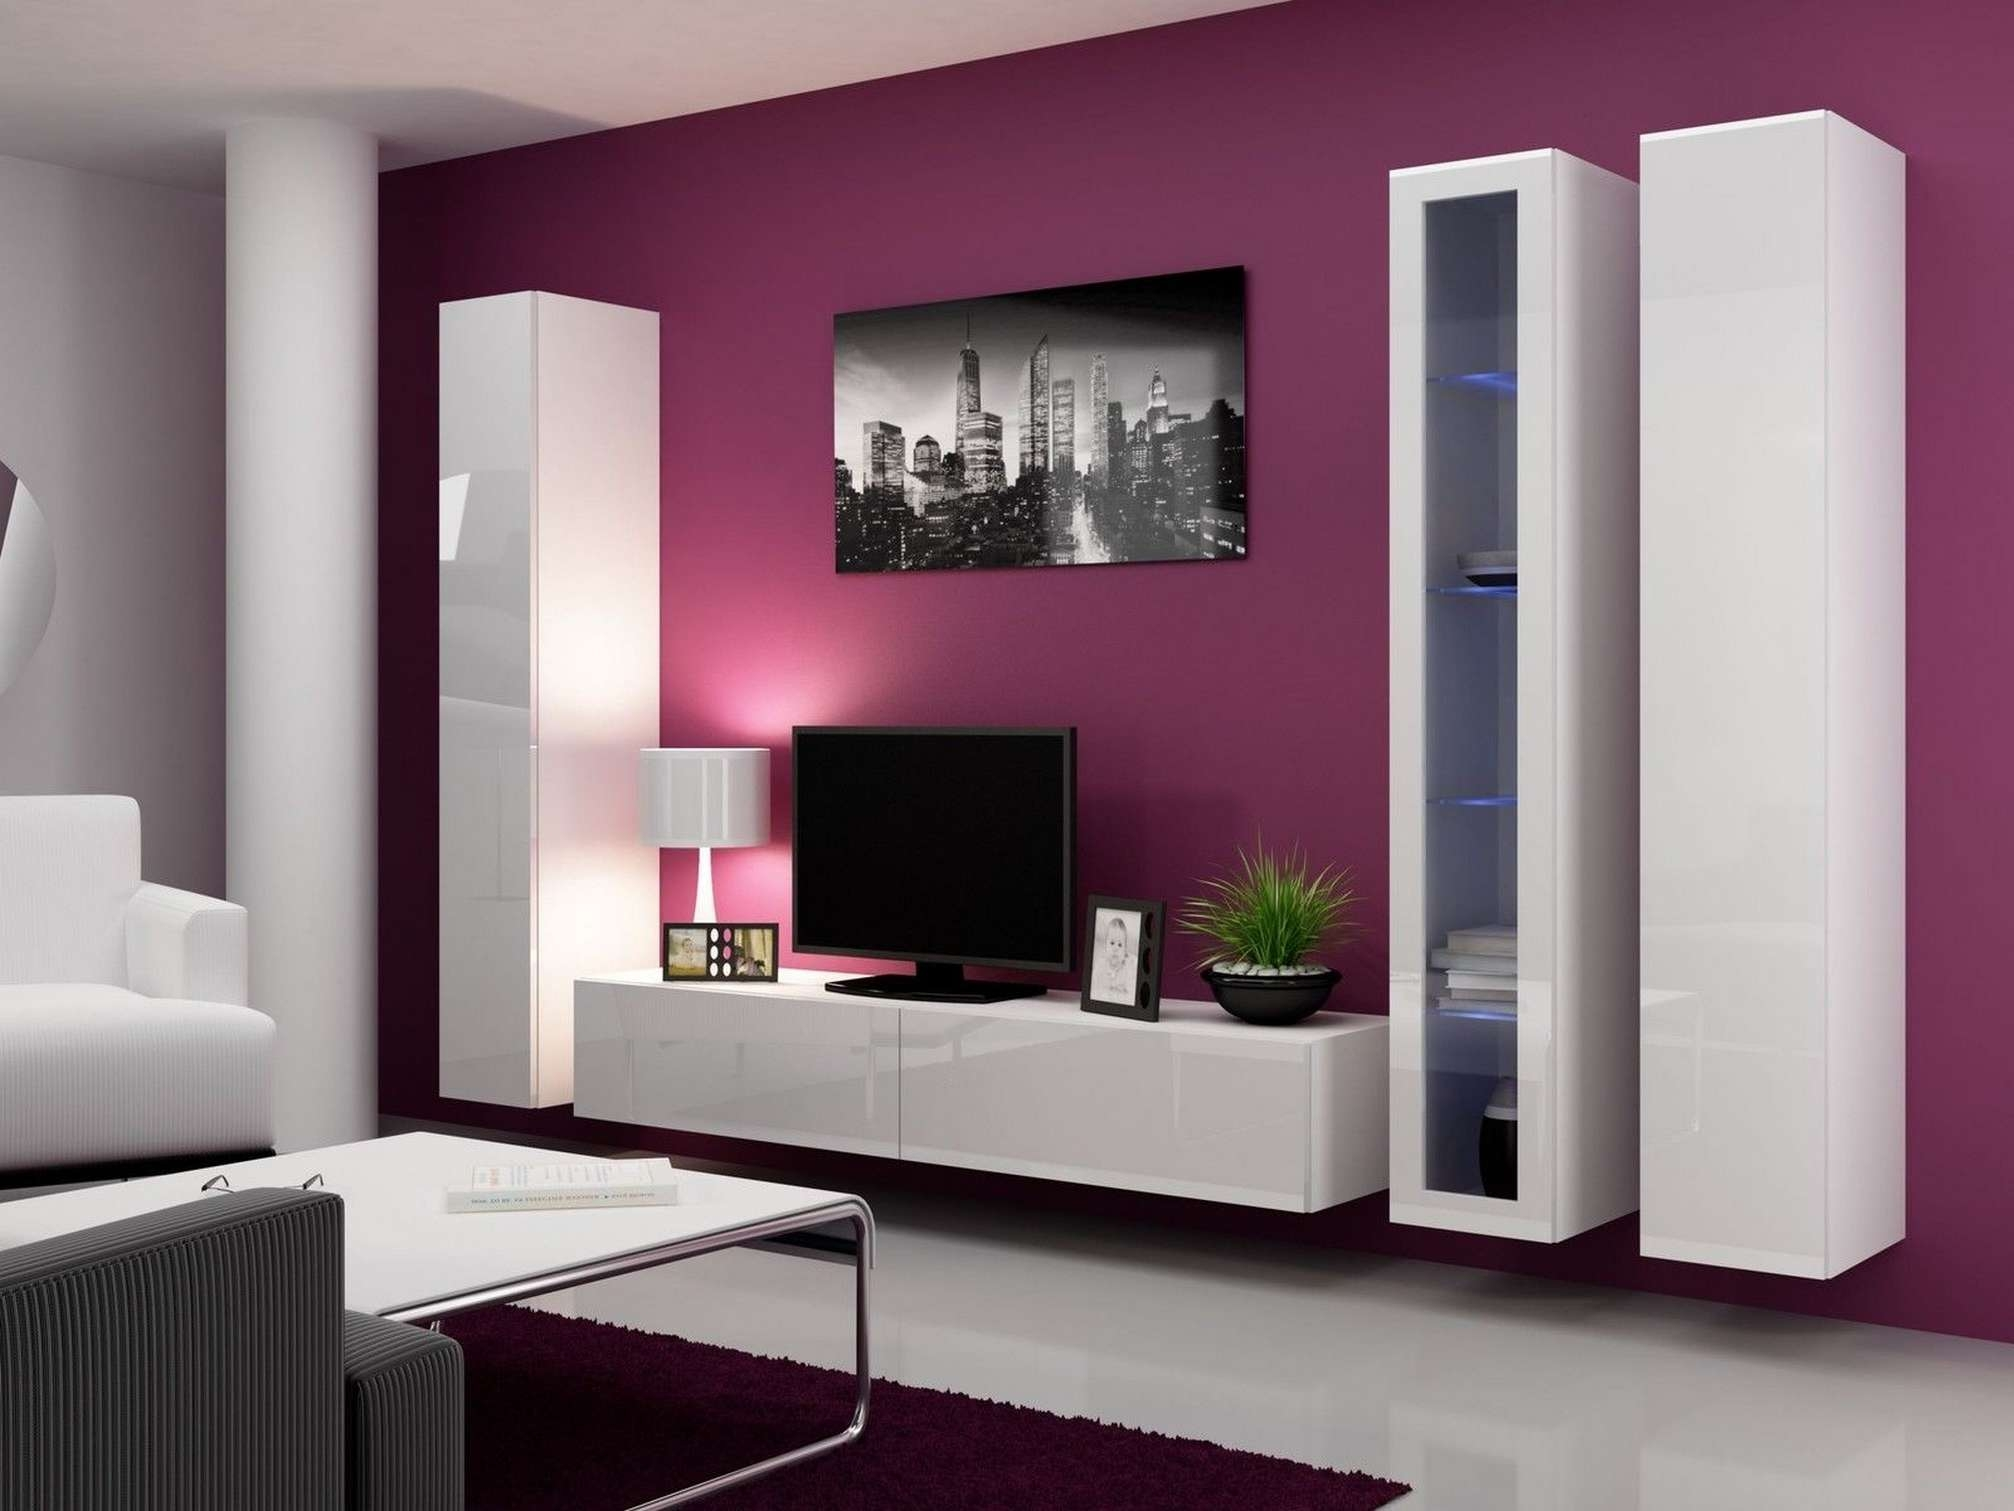 Pink Color Schemes Ideas For Living Room With Modern Wall Mounted With Regard To Modern Wall Mount Tv Stands (View 10 of 20)